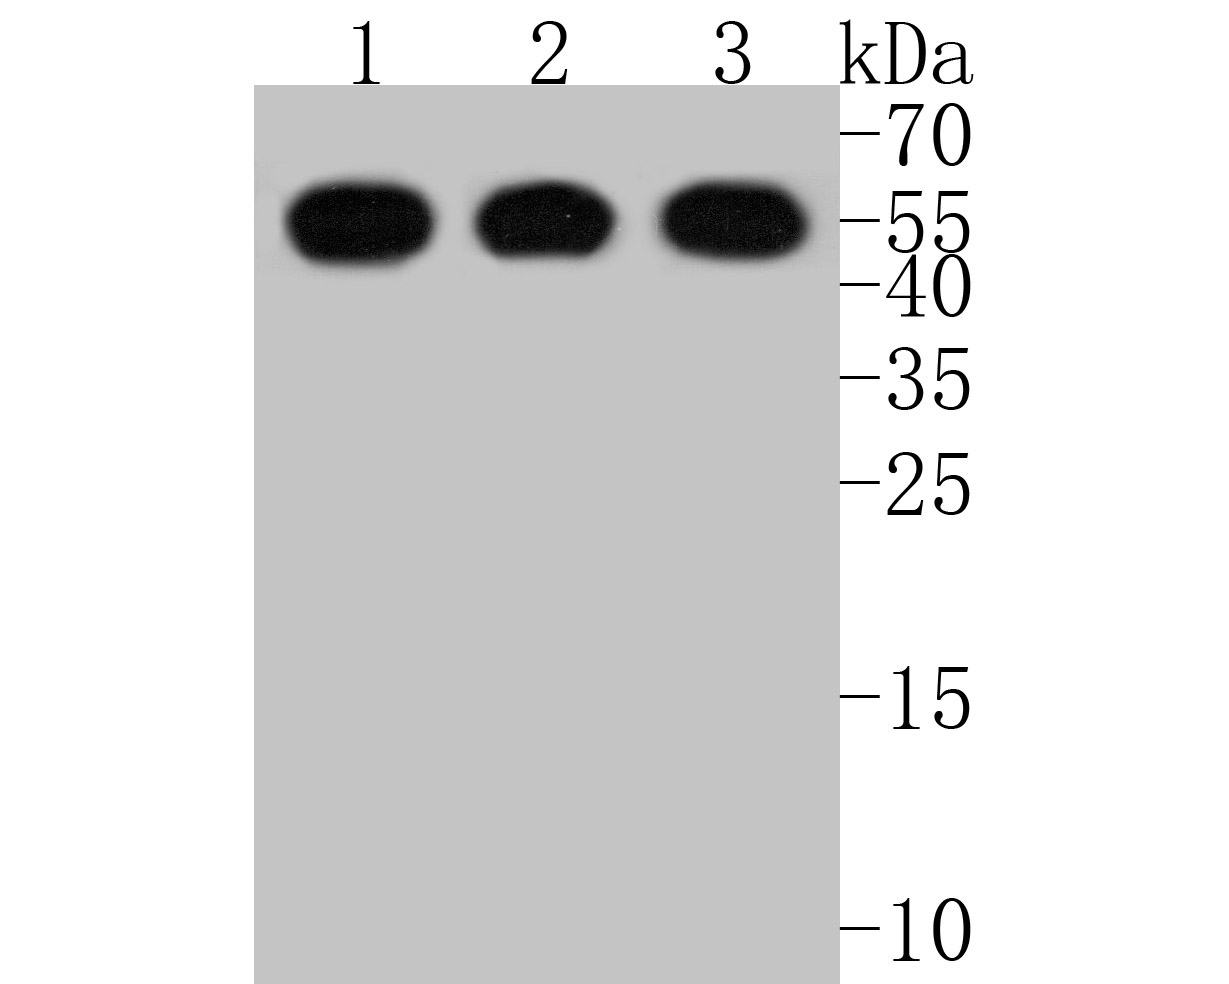 Western blot analysis of hnRNP K on different lysates. Proteins were transferred to a PVDF membrane and blocked with 5% BSA in PBS for 1 hour at room temperature. The primary antibody (ET1610-38, 1/500) was used in 5% BSA at room temperature for 2 hours. Goat Anti-Rabbit IgG - HRP Secondary Antibody (HA1001) at 1:5,000 dilution was used for 1 hour at room temperature.<br />  Positive control: <br />  Lane 1: Jurkat cell lysate<br />  Lane 2: Hela cell lysate<br />  Lane 3: NIH/3T3 cell lysate